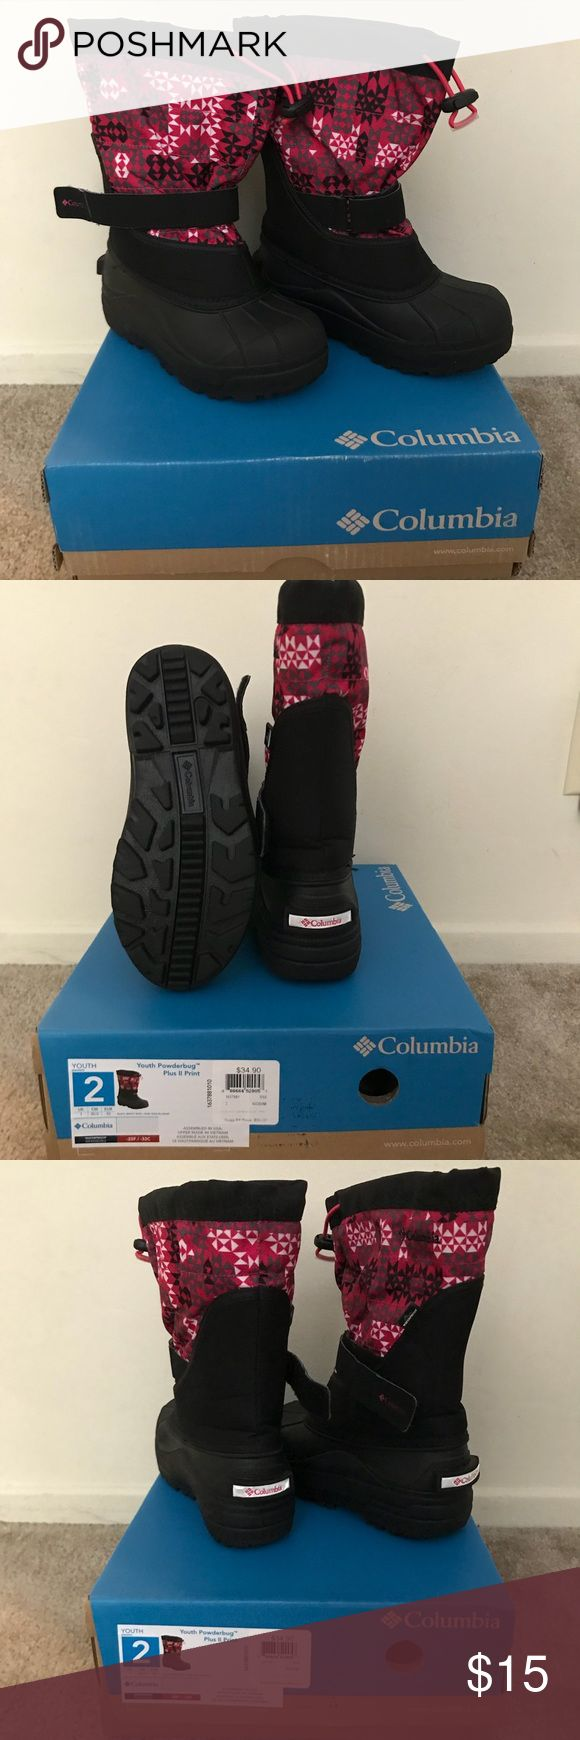 Columbia Snow Boots for girls Columbia Snow Boots for girls  Used only once for a snow trip as the owner lives in southern california and we hardly get any snow here. The owner grew out of it right away. Columbia Shoes Rain & Snow Boots